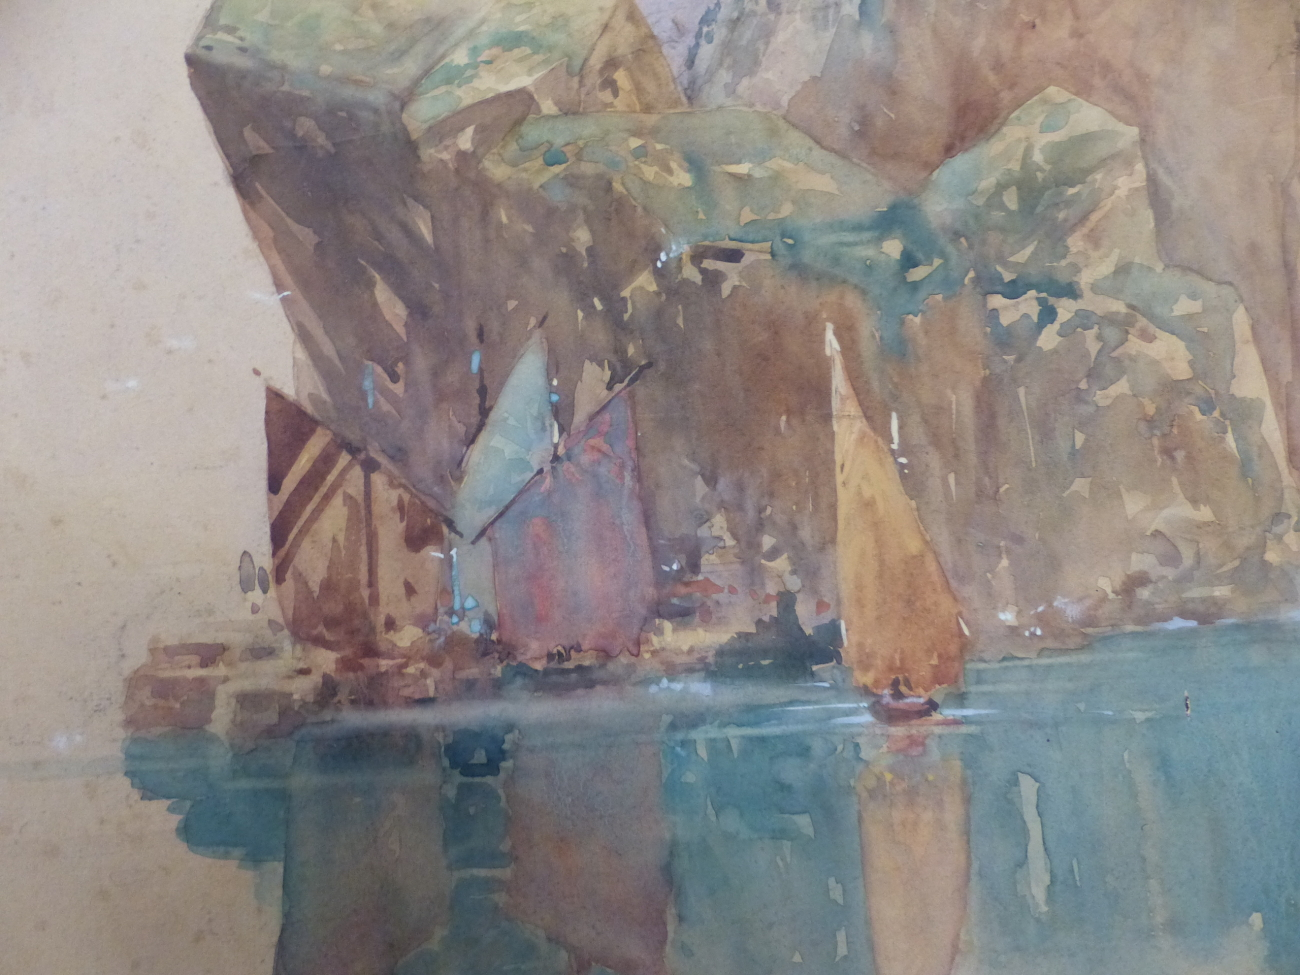 HARRY ROUNTREE (1878 - 1950) A RIVER VIEW, SIGNED WATERCOLOUR UNFRAMED 38.5 x 55cm - Image 3 of 4